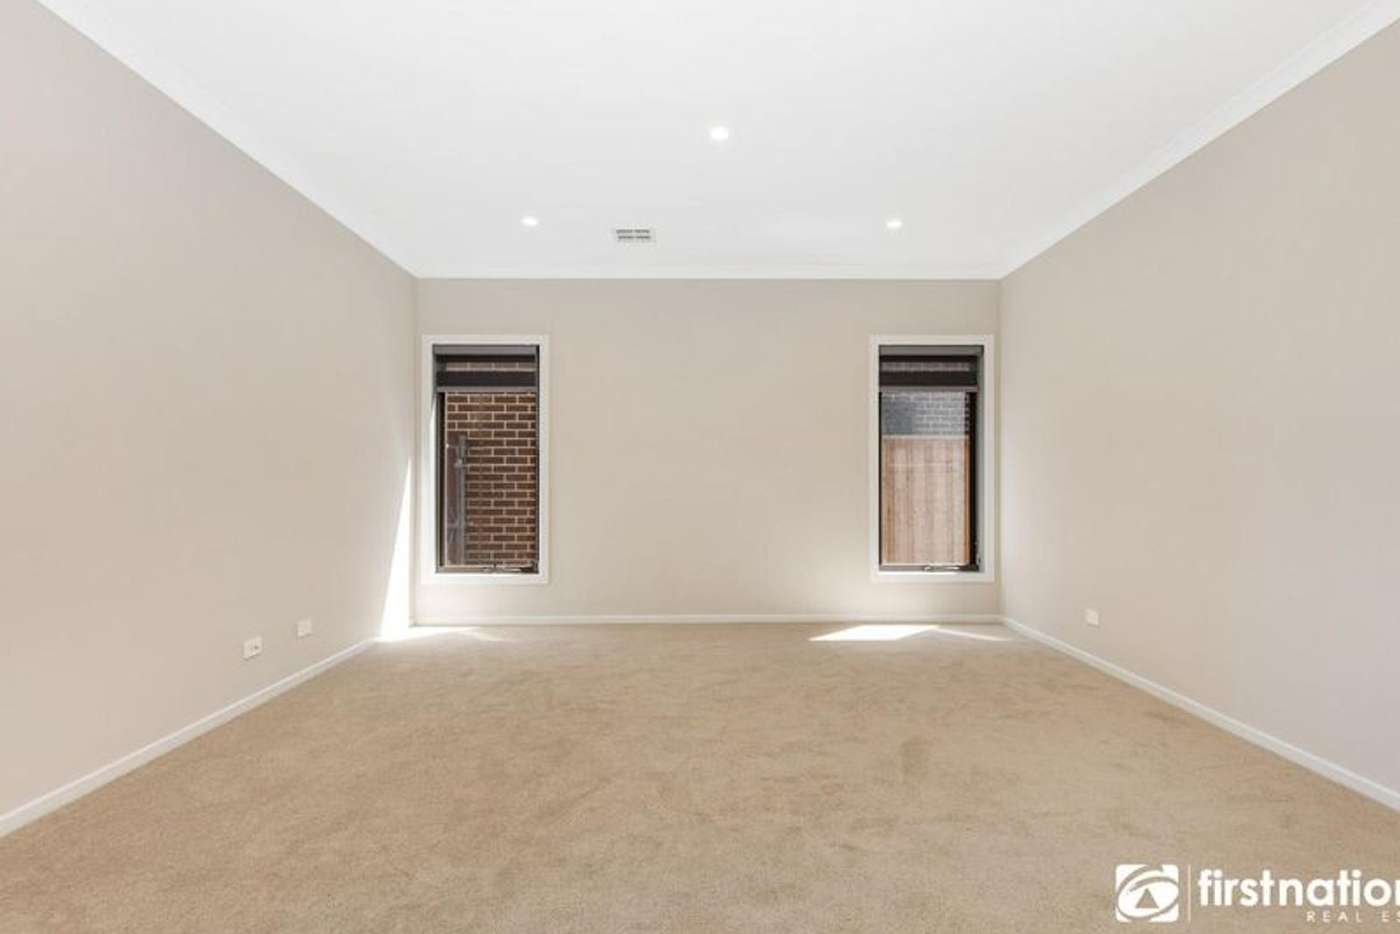 Seventh view of Homely house listing, 23 Viewside Way, Point Cook VIC 3030